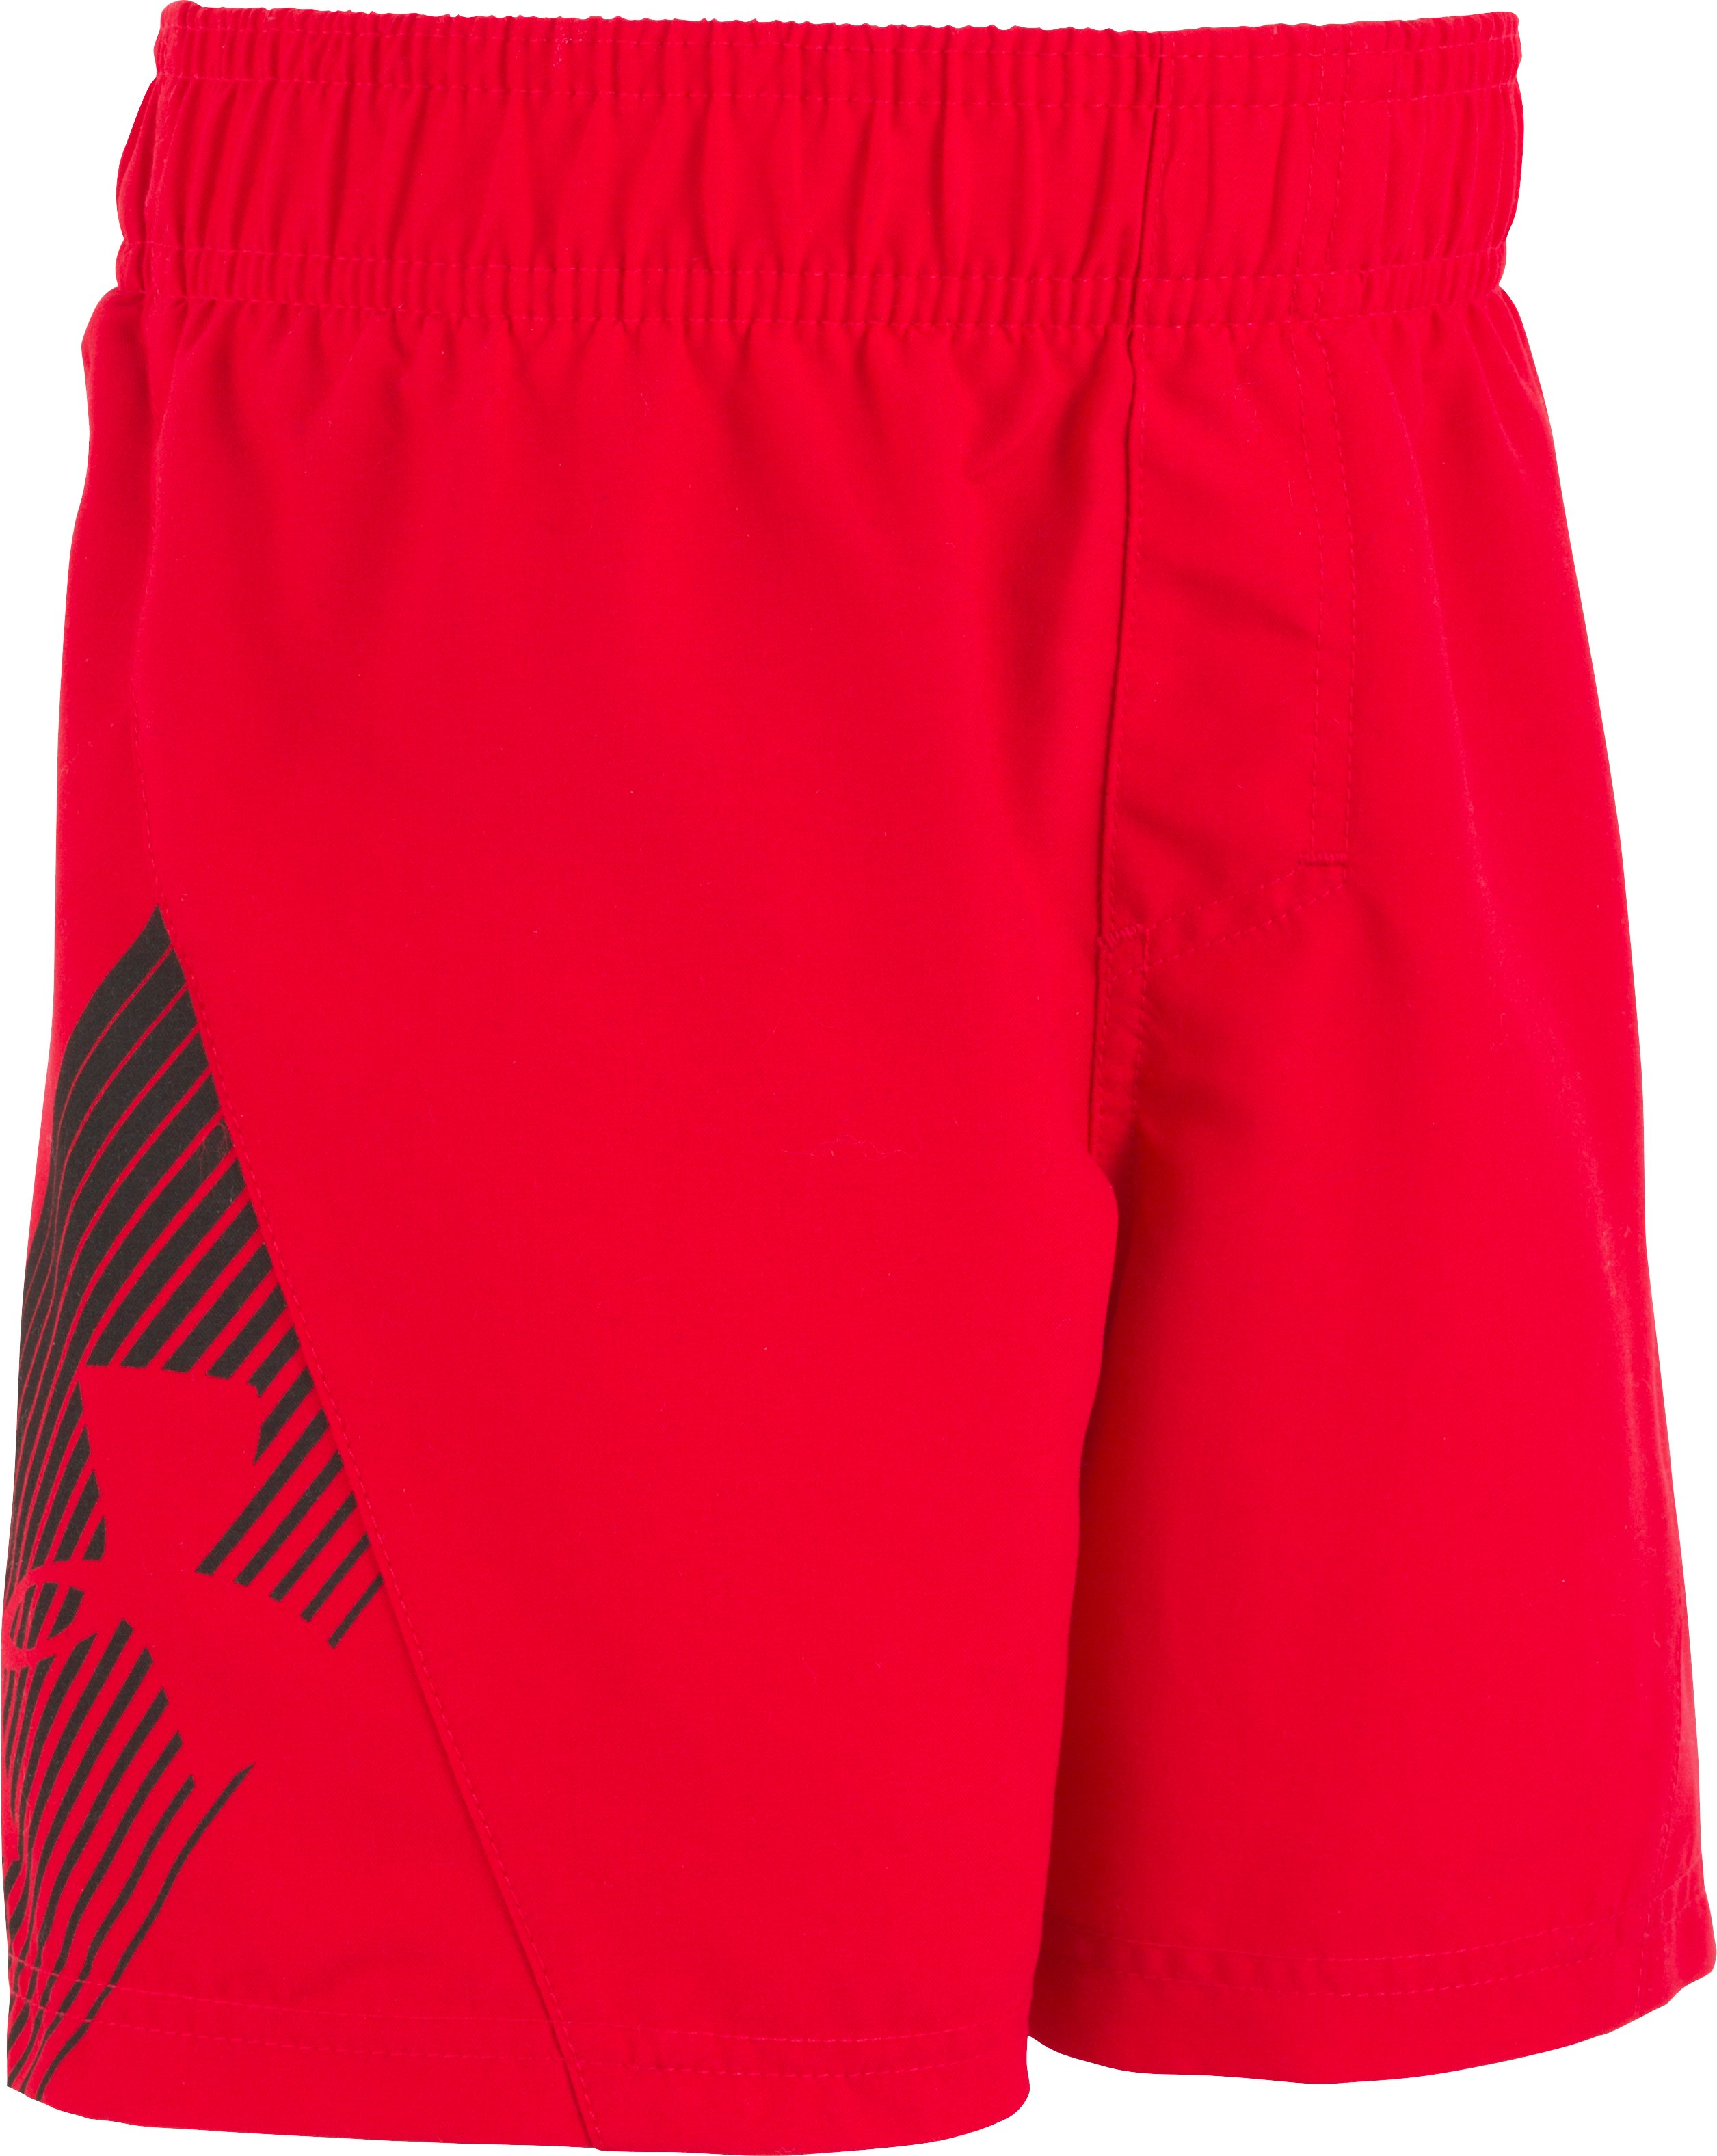 Boys' Infant UA Entry Solid Boardshorts, Red, zoomed image